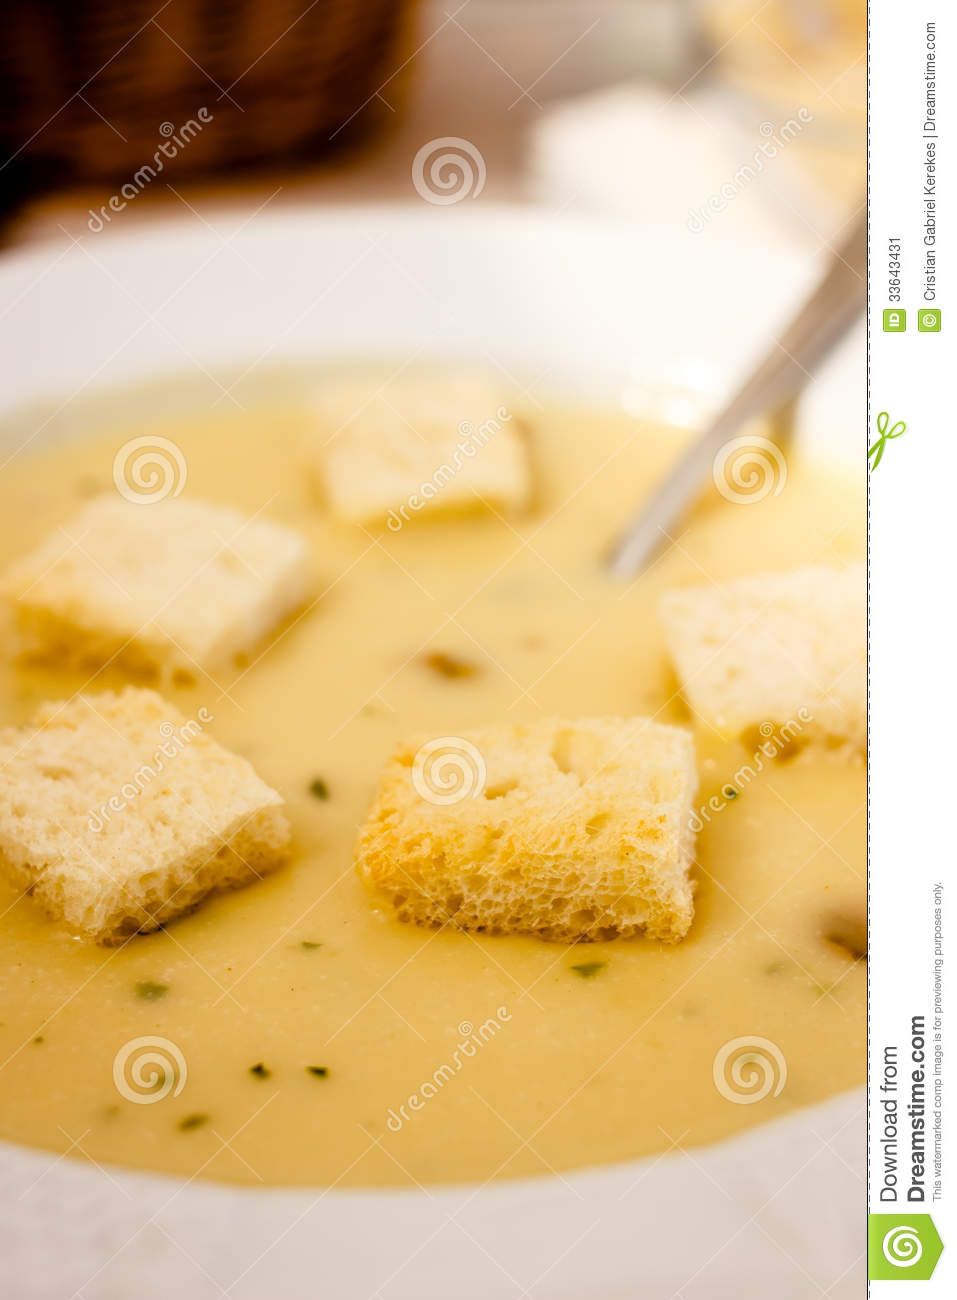 how to make croutons from white bread